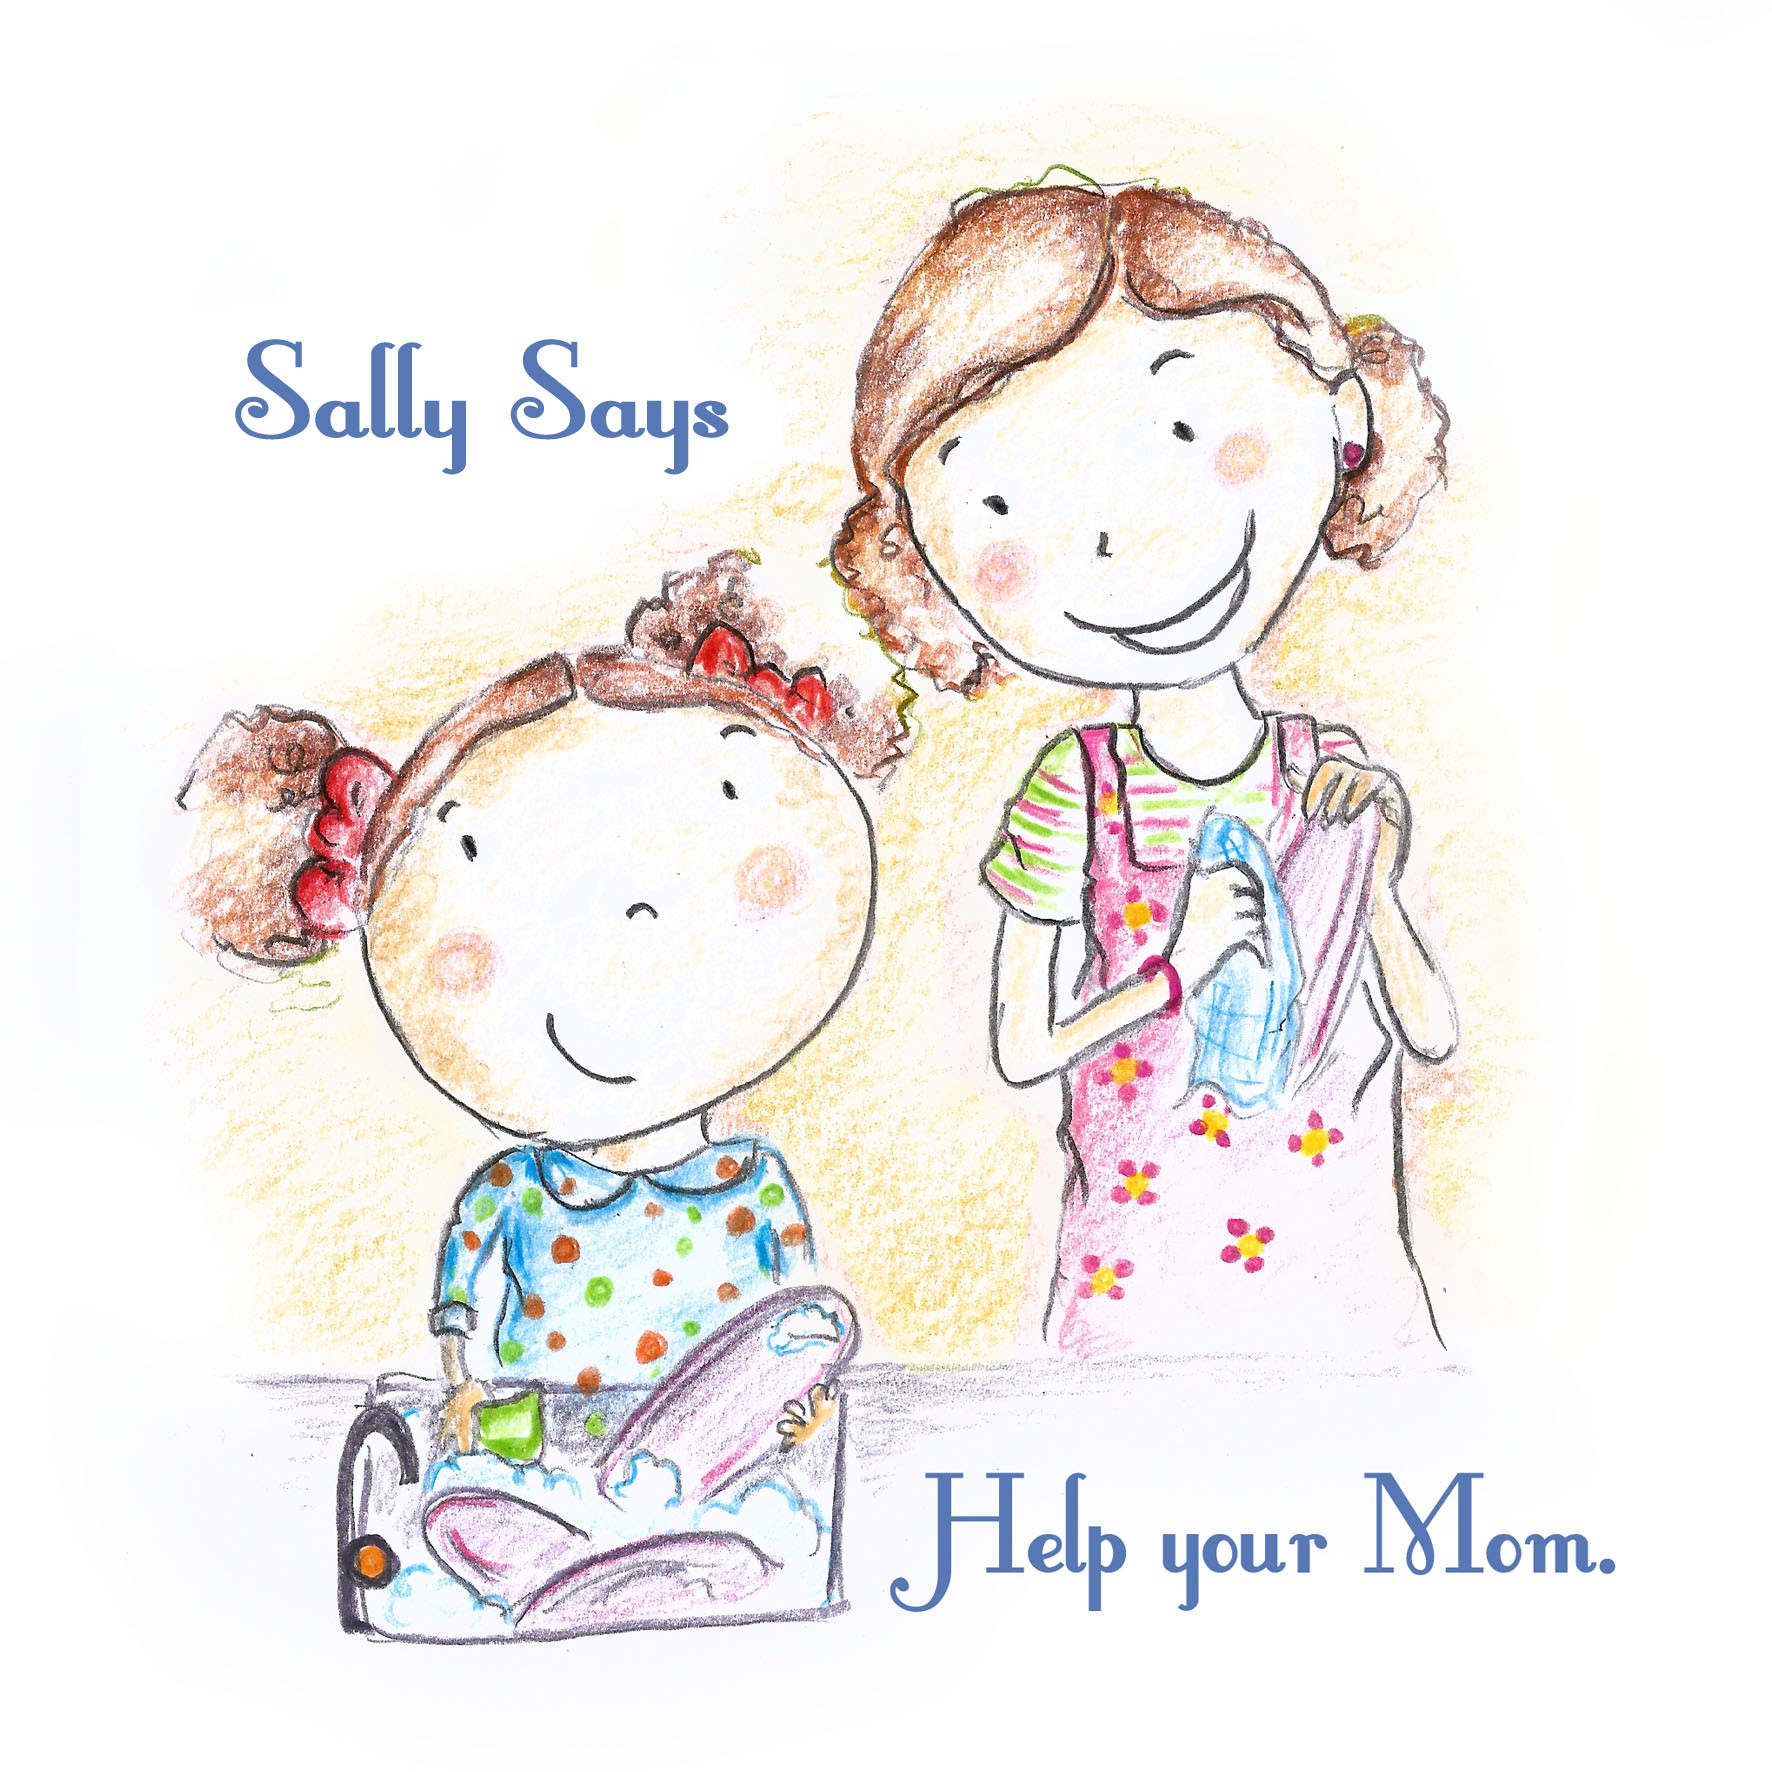 Help Sally Says with a new art or illustration